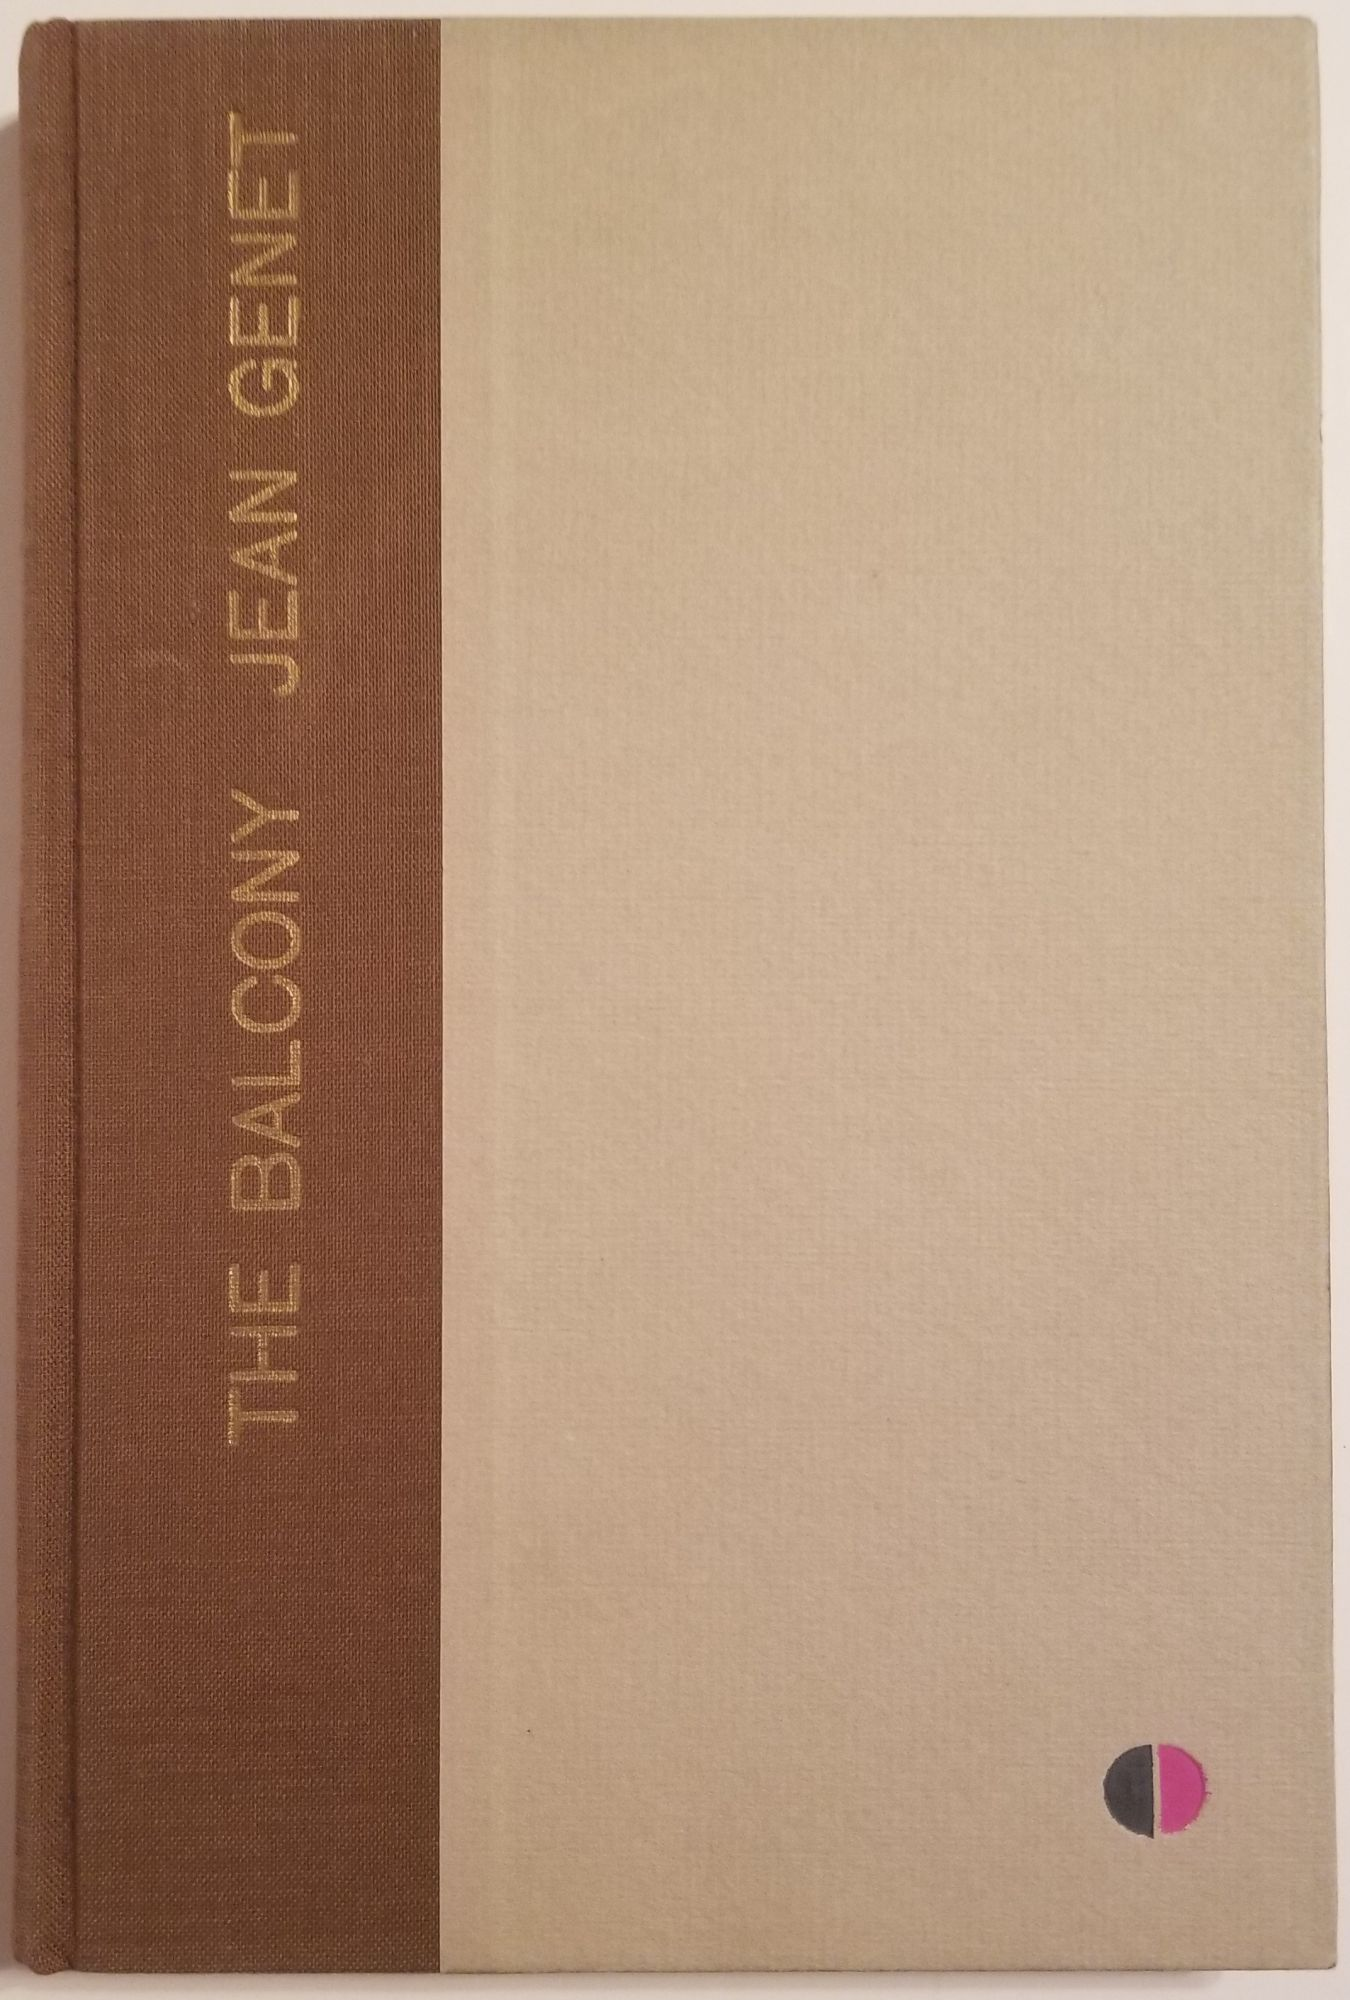 THE BALCONY. A Play in Nine Scenes. Translated by Bernard Frechtman. Jean Genet.